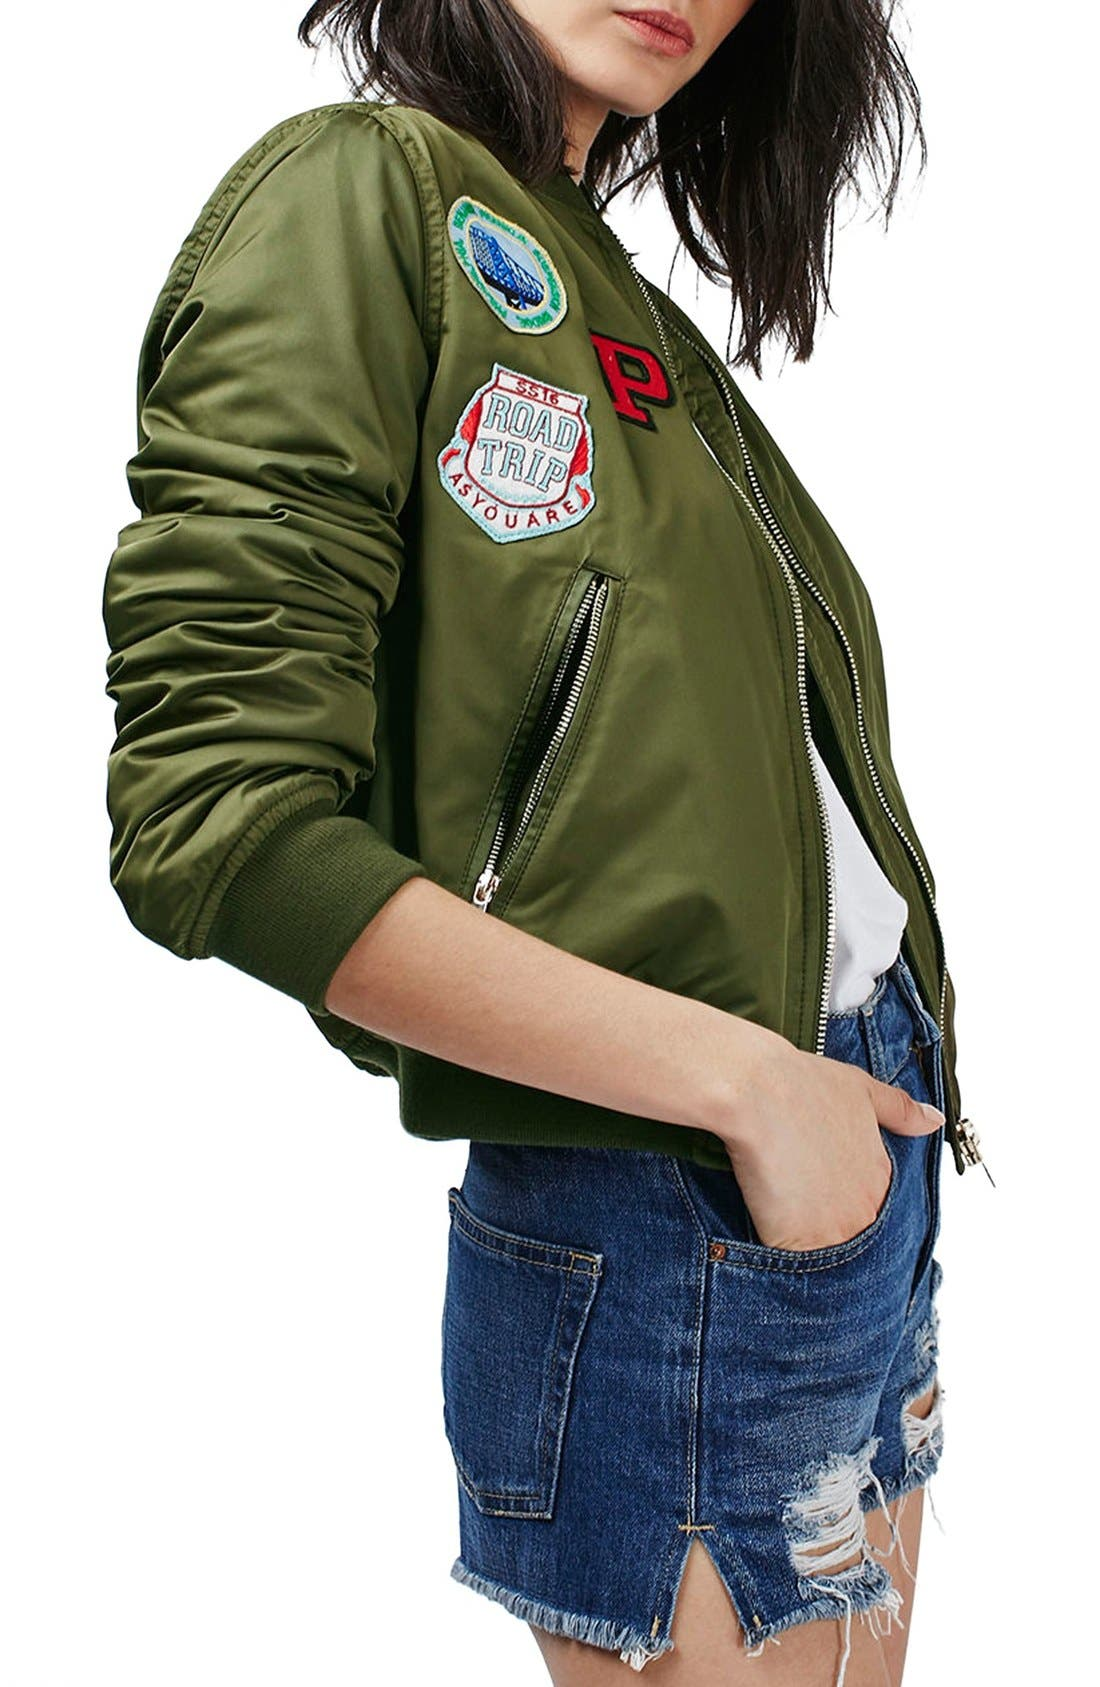 TOPSHOP 'Bruce' Patch Detail MA1 Bomber Jacket, Main, color, 300